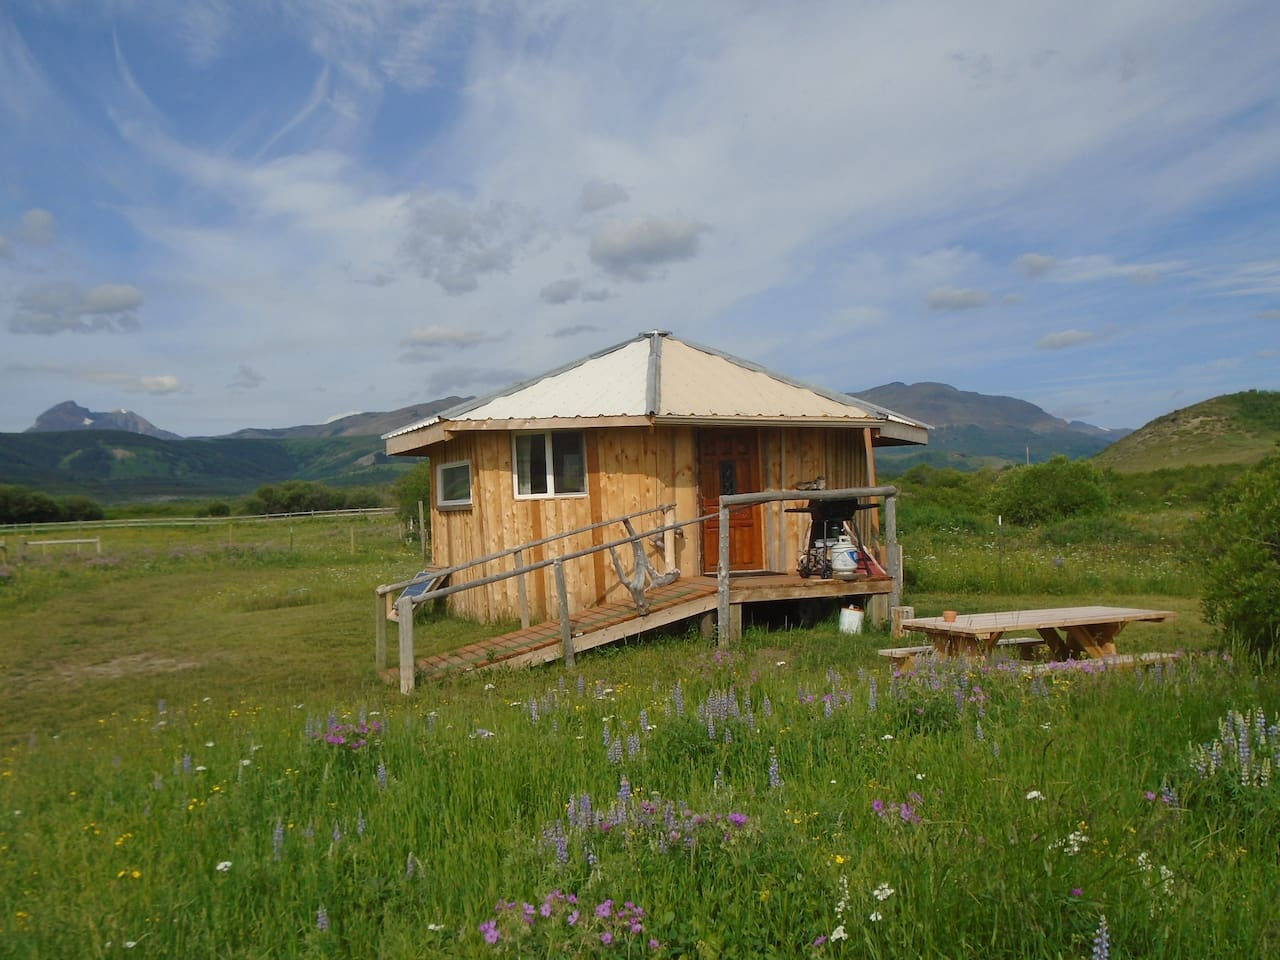 the roundhouse at squashum flats offers simplicity-beauty-solitude and a darn nice bed!